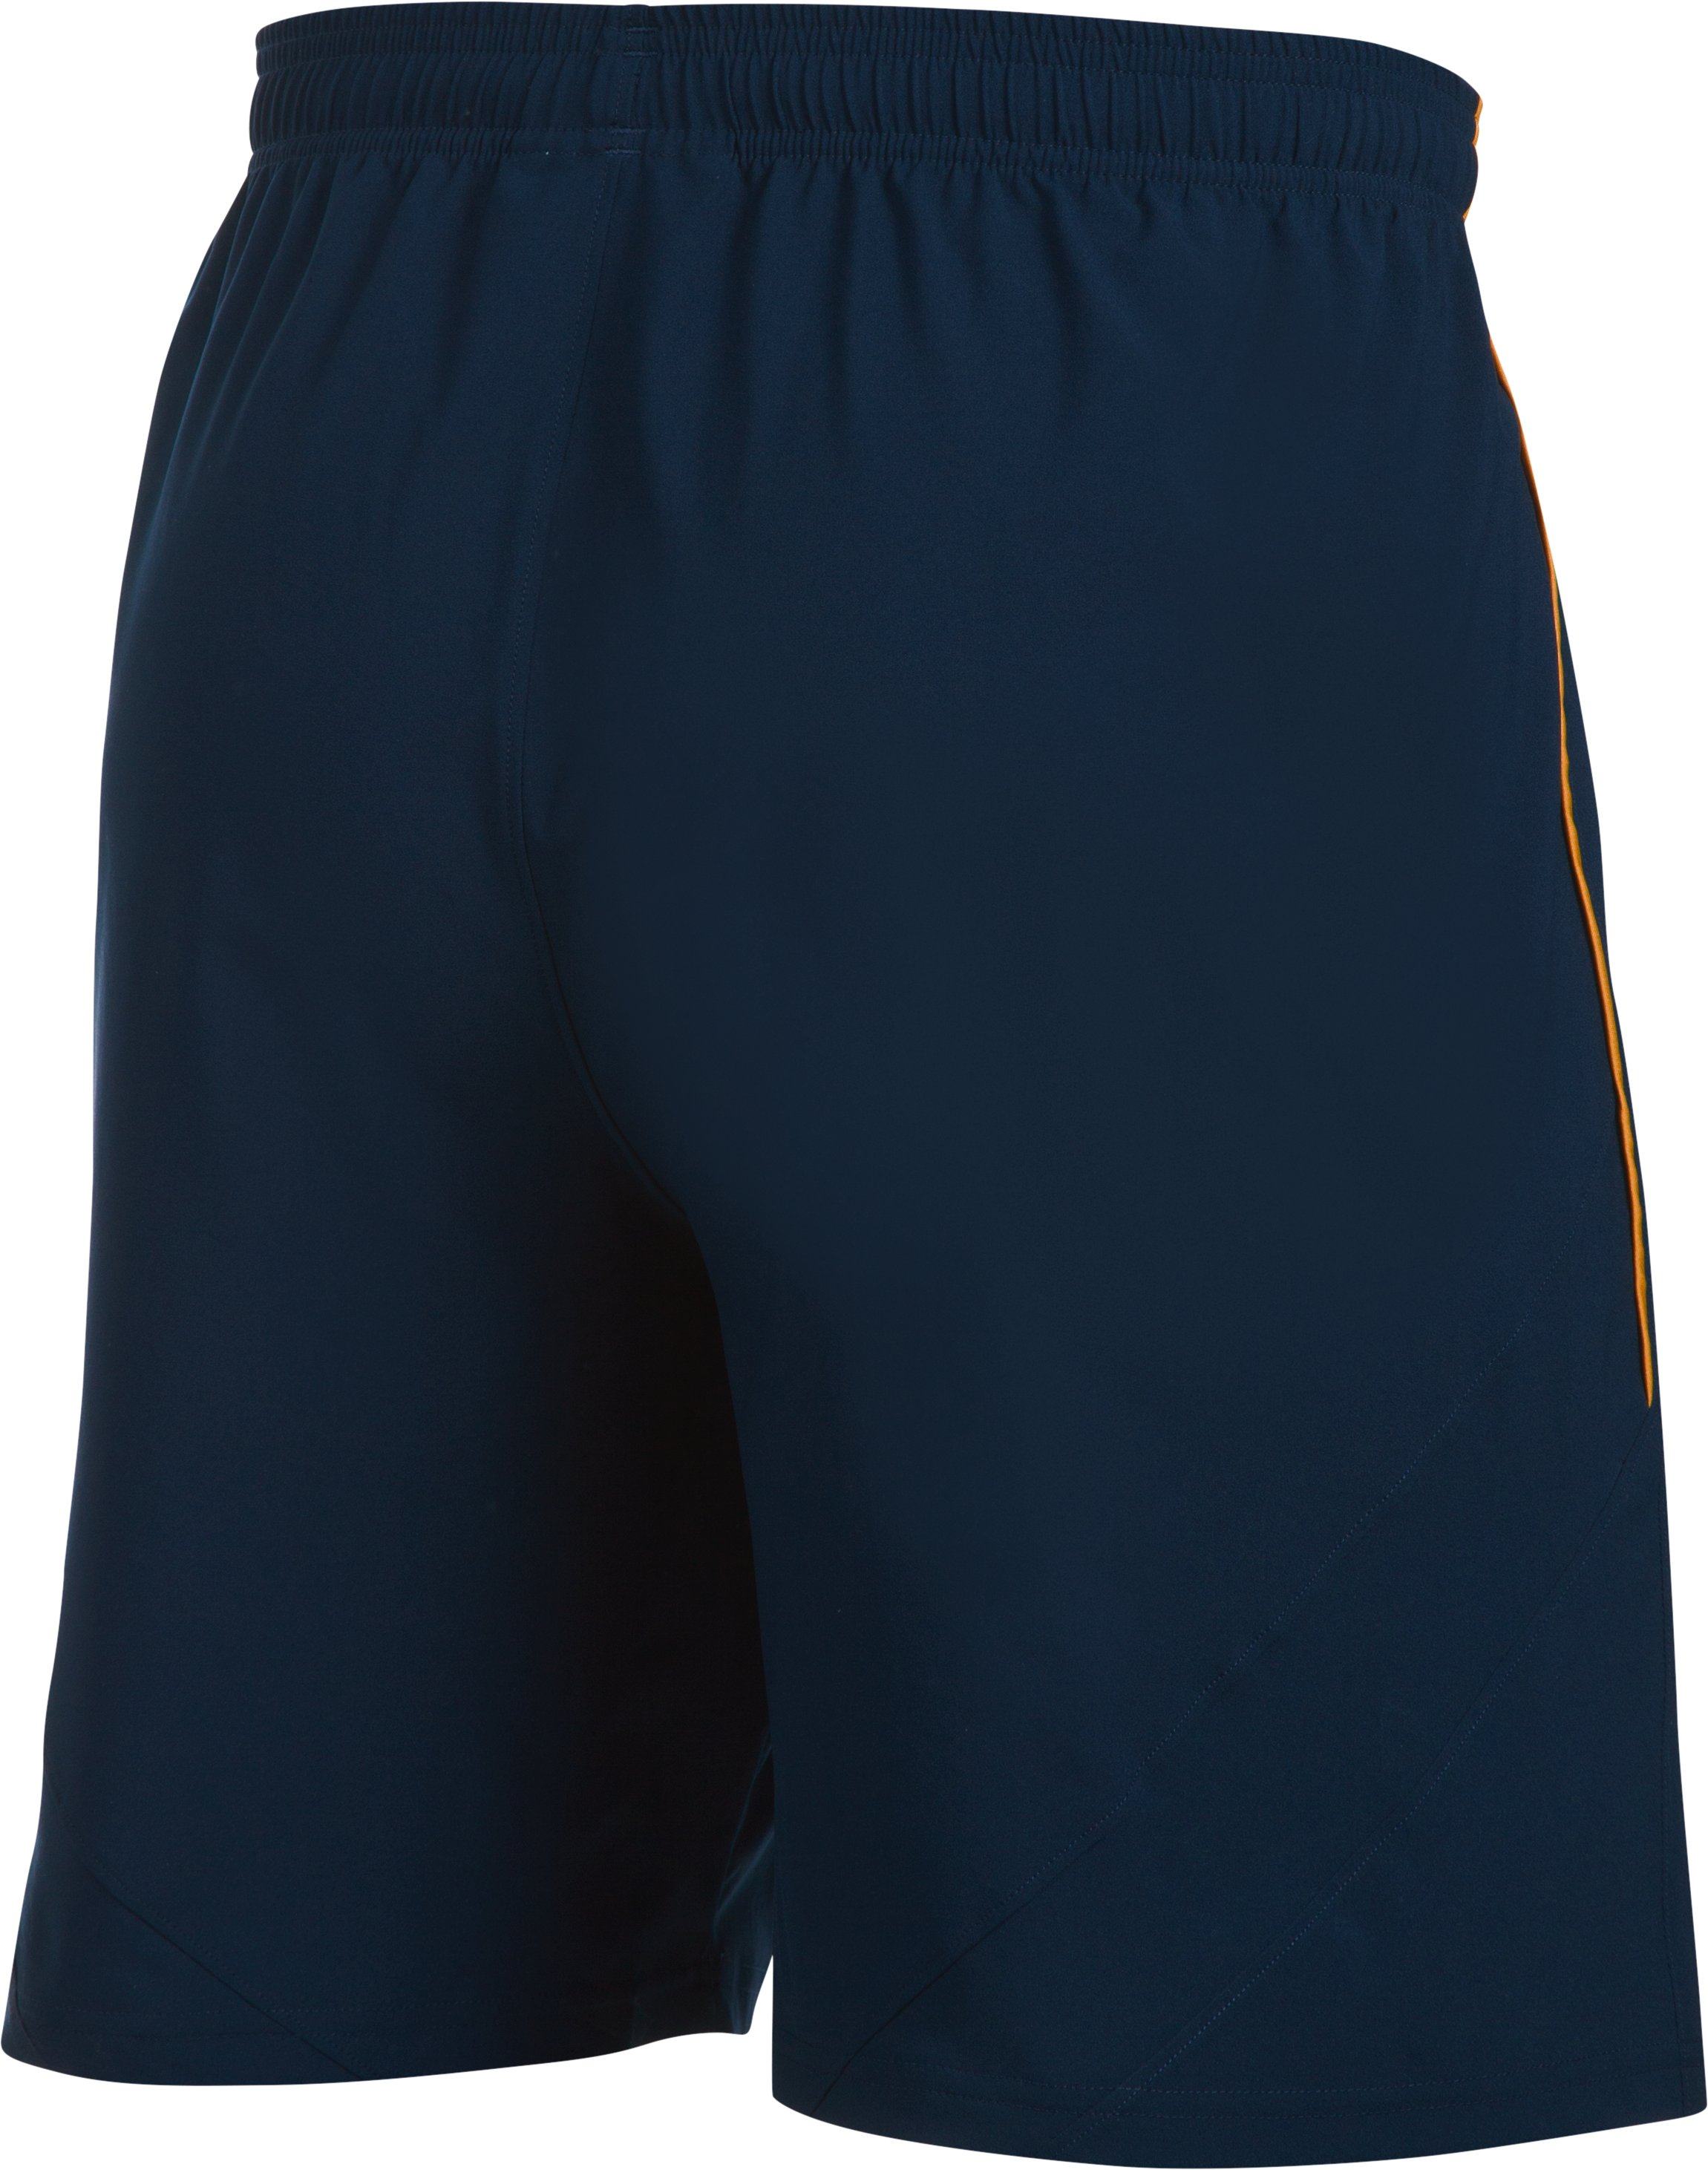 Men's Tottenham Hotspur Training Shorts, Cadet, undefined